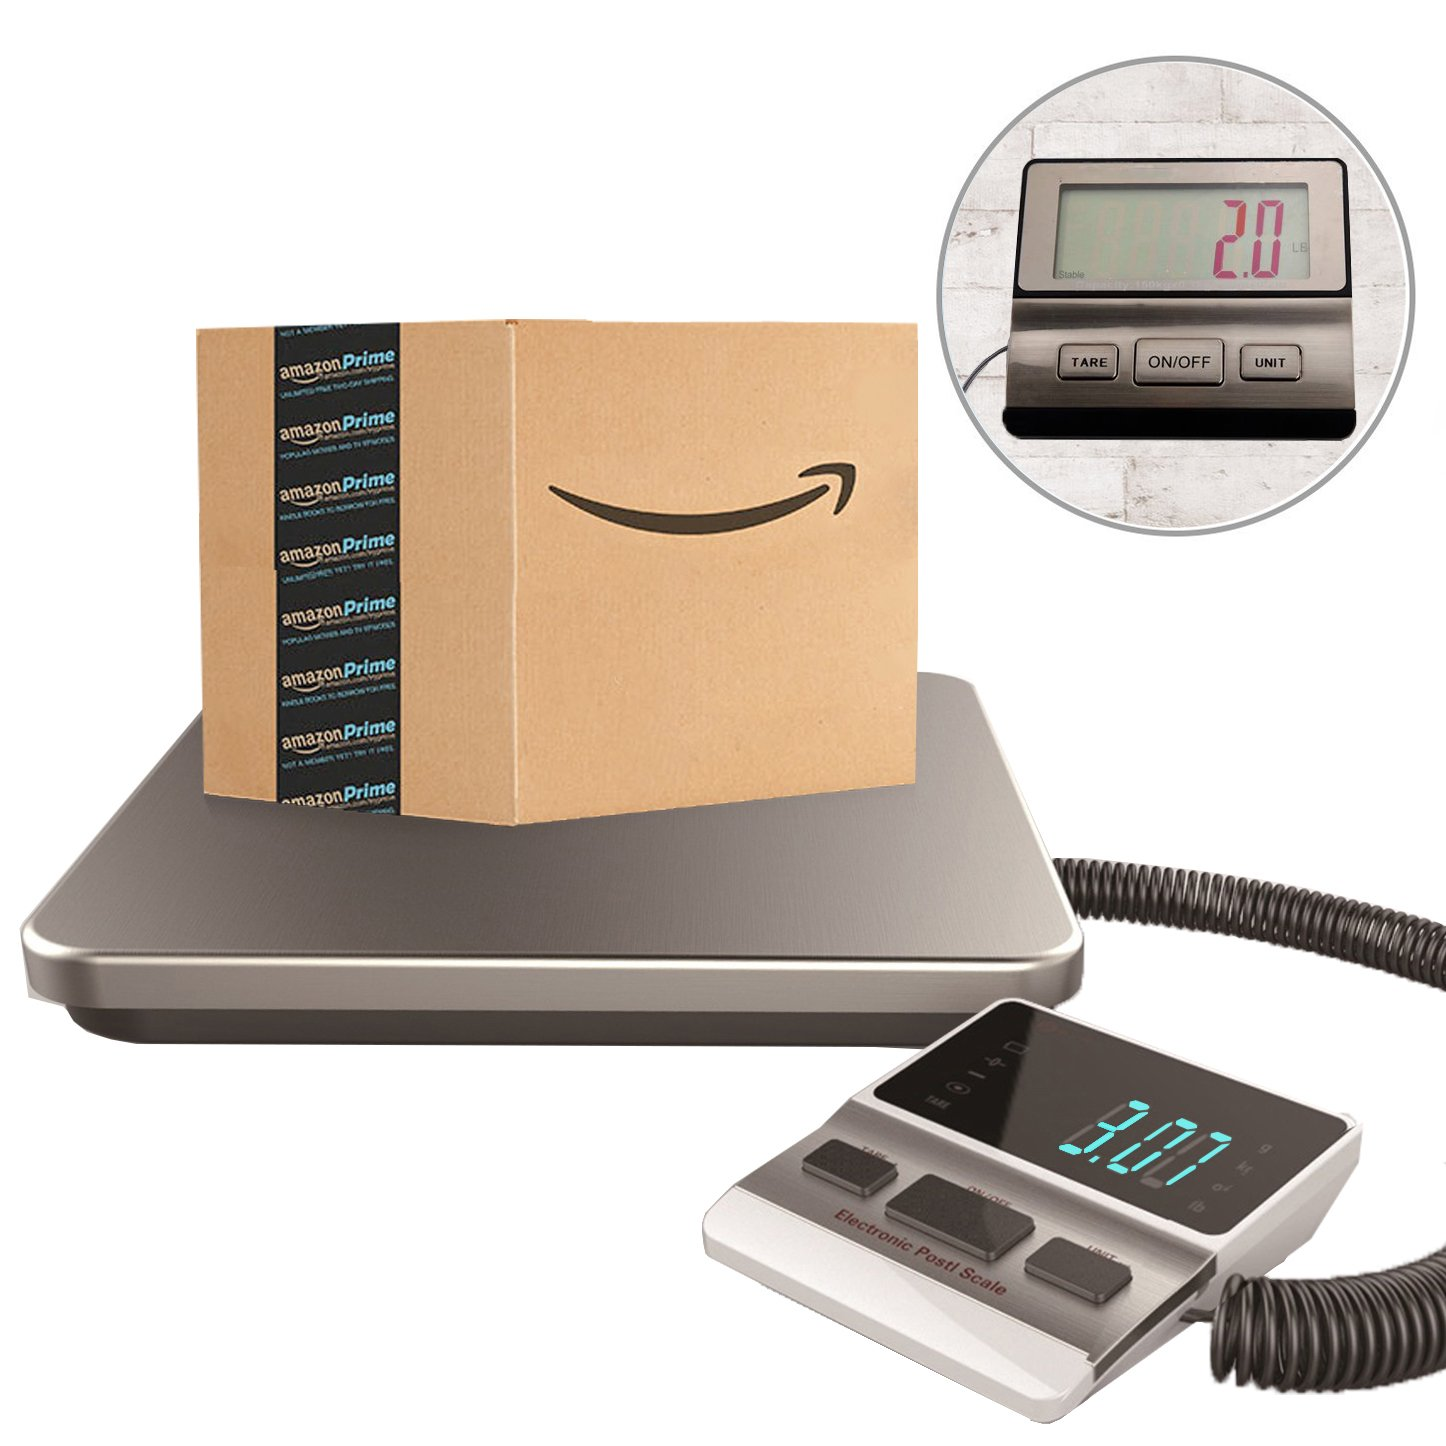 Postal Scales - Page 4 - Super Savings! Save up to 33% | Albarq Shipping